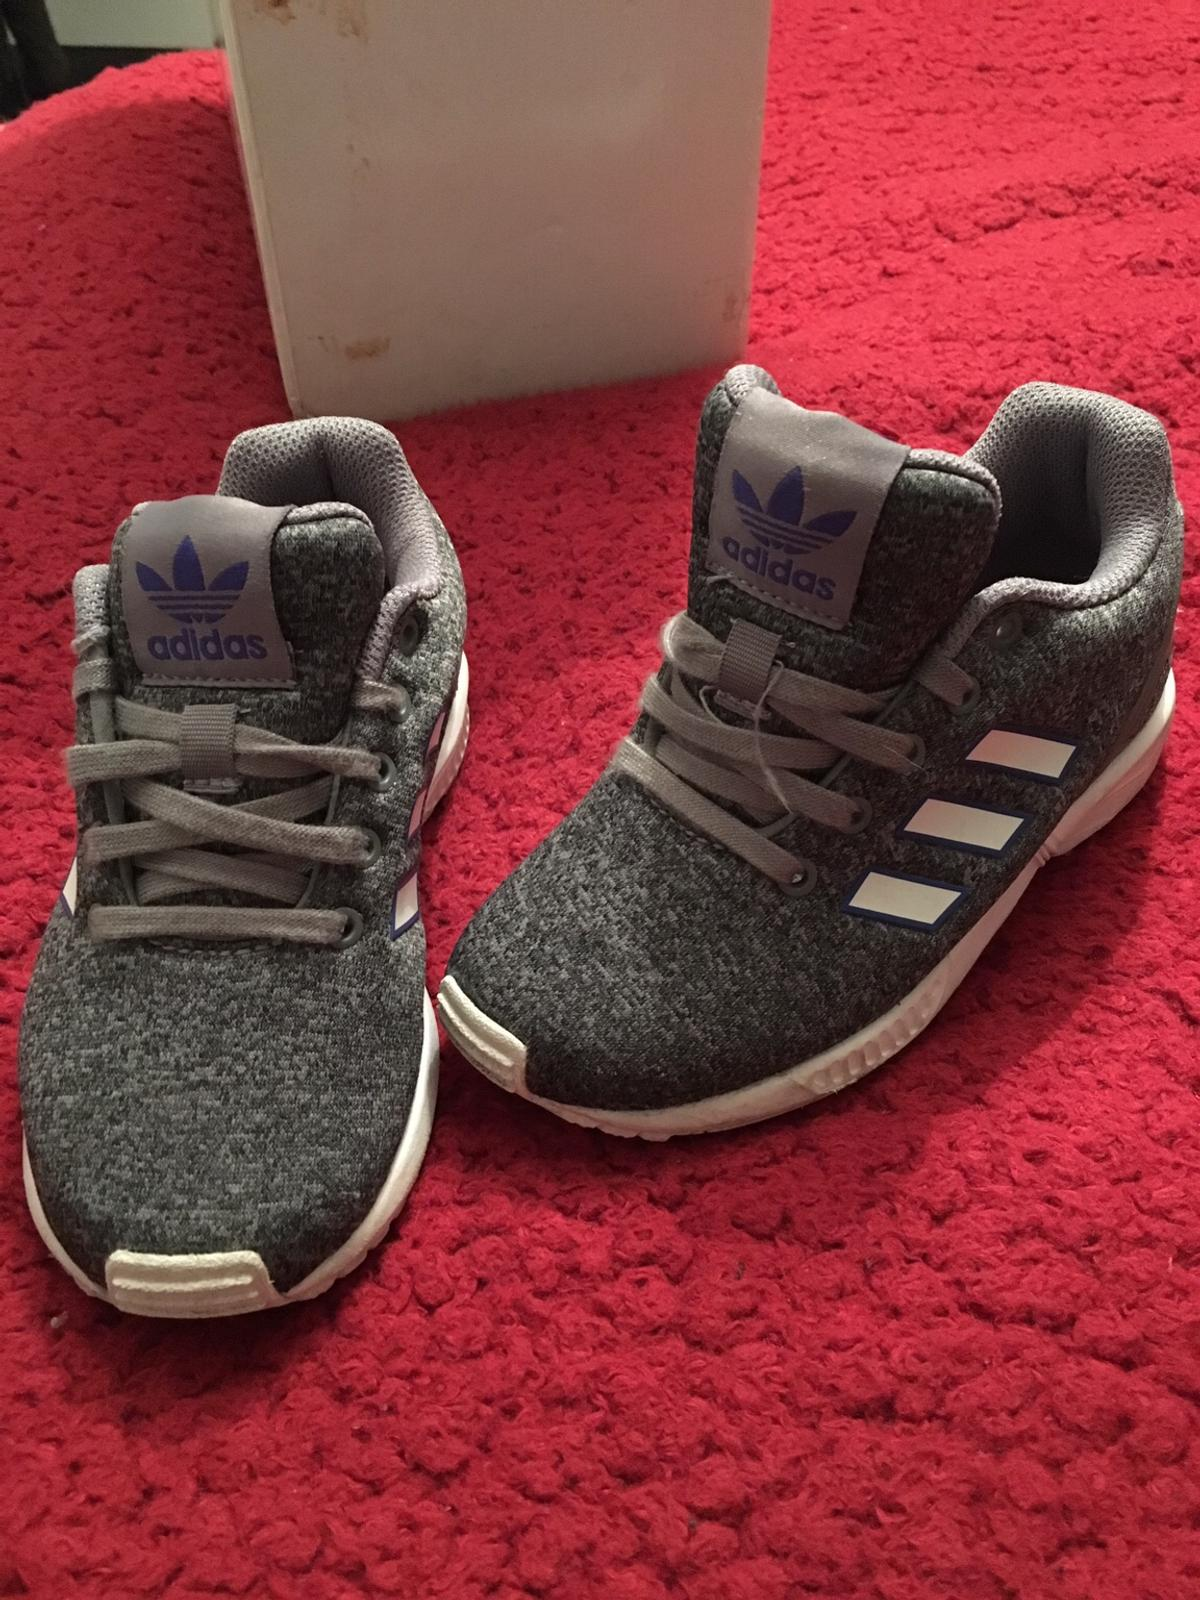 online store cheapest cute Adidas torsion kids trainers size 10 in Hurlford for £10.00 for ...